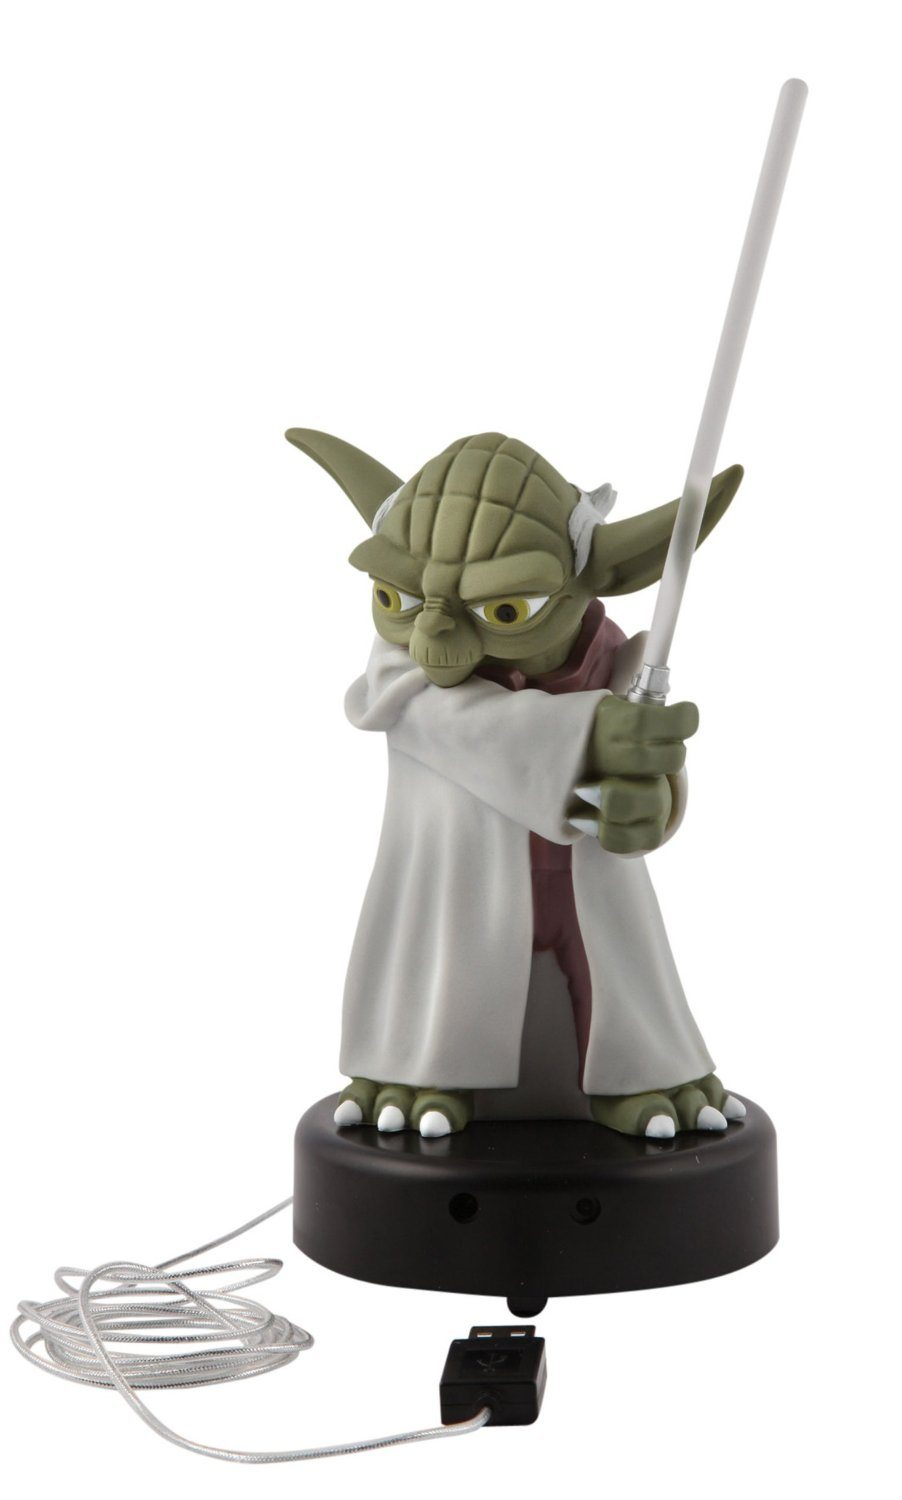 https://www.amazon.com/Star-Wars-Yoda-Protector-Figure/dp/B001W0ZX2M